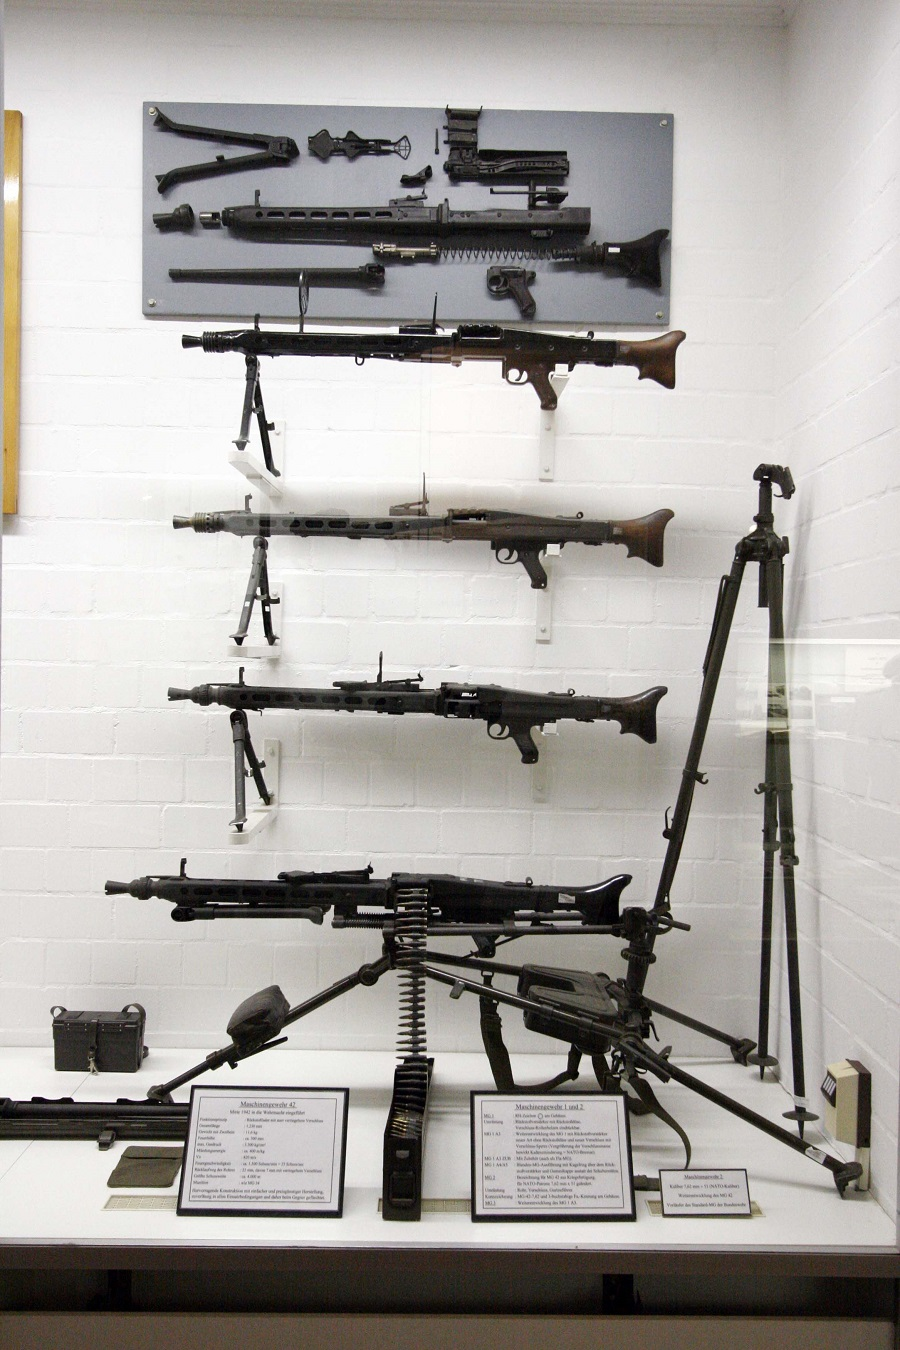 MG 42 in different variants